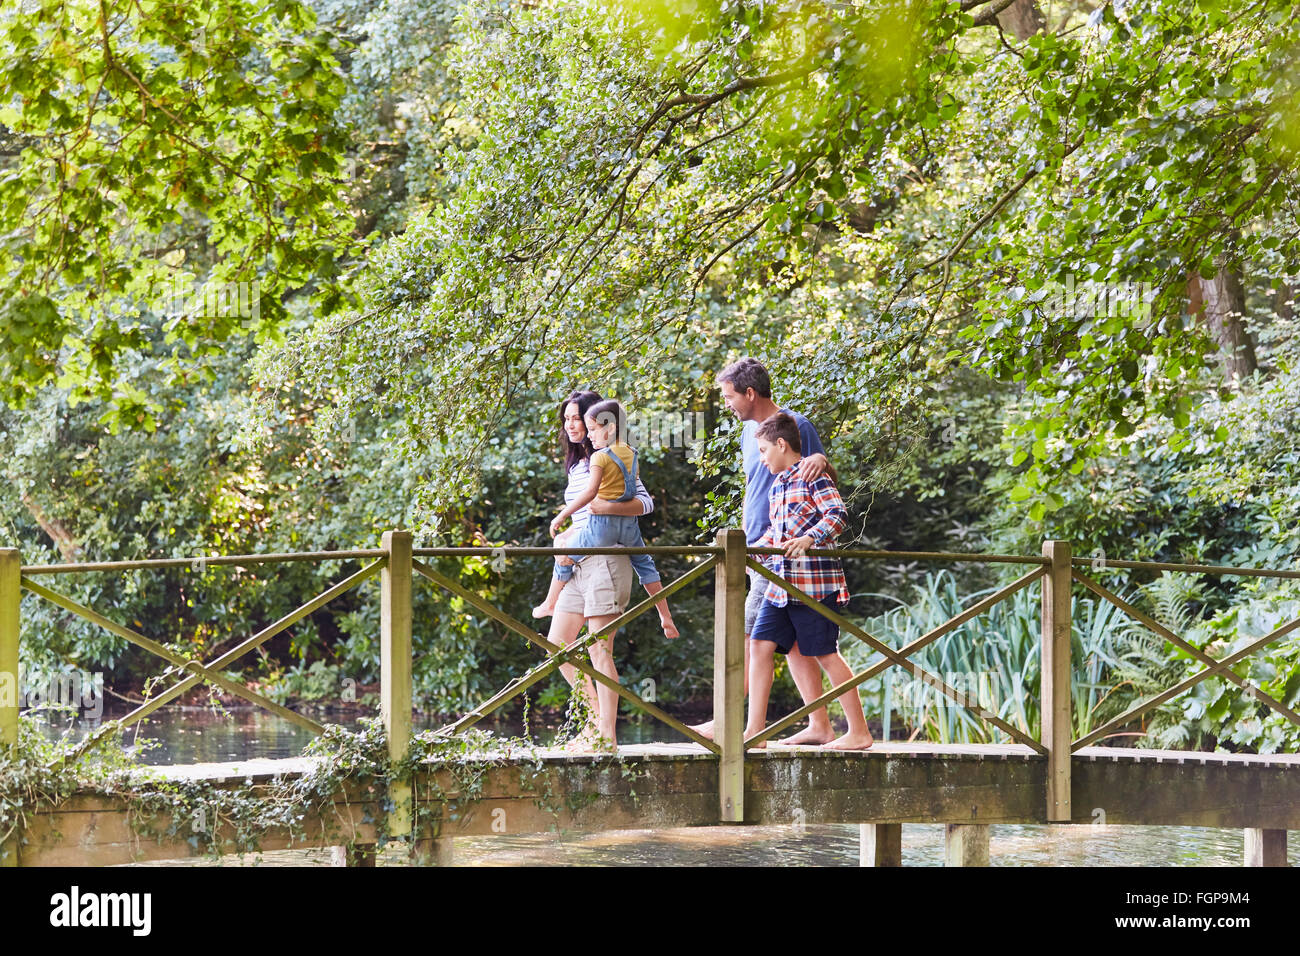 Family crossing footbridge in park with trees - Stock Image